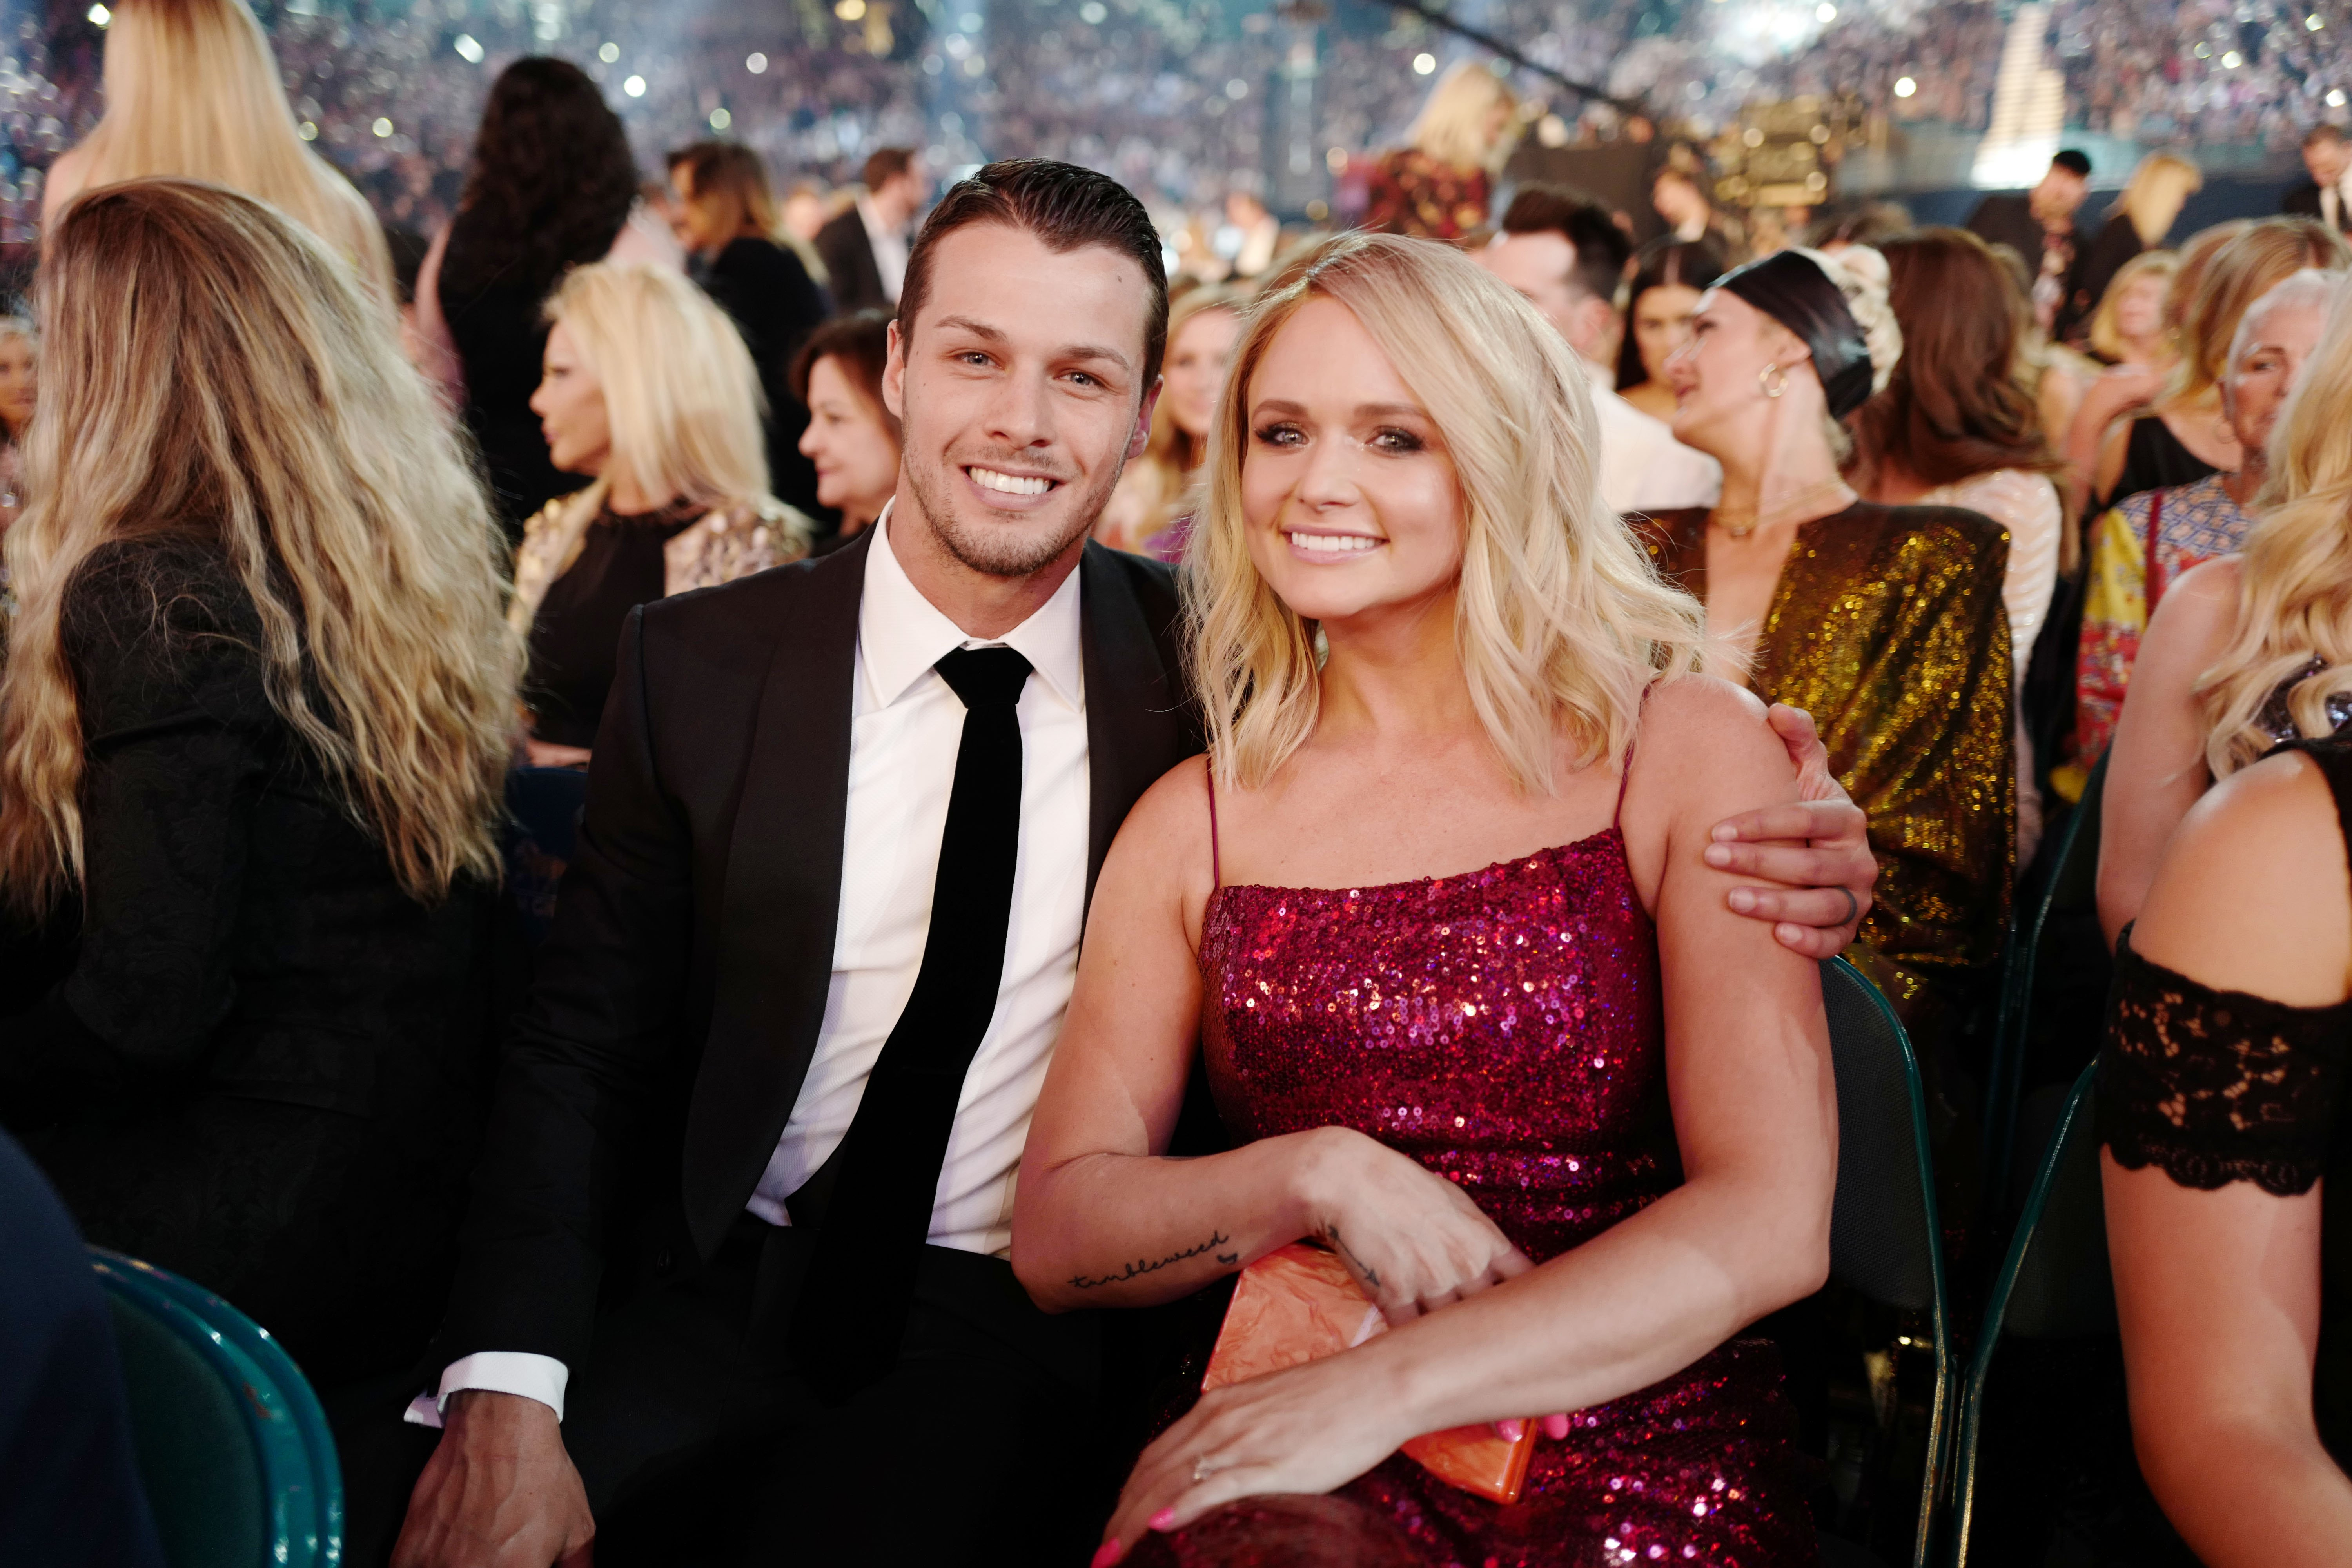 Brendan McLoughlin and Miranda Lambert at the 54th Academy Of Country Music Awards at MGM Grand Garden Arena on April 07, 2019 in Las Vegas, Nevada | Photo: Getty Images